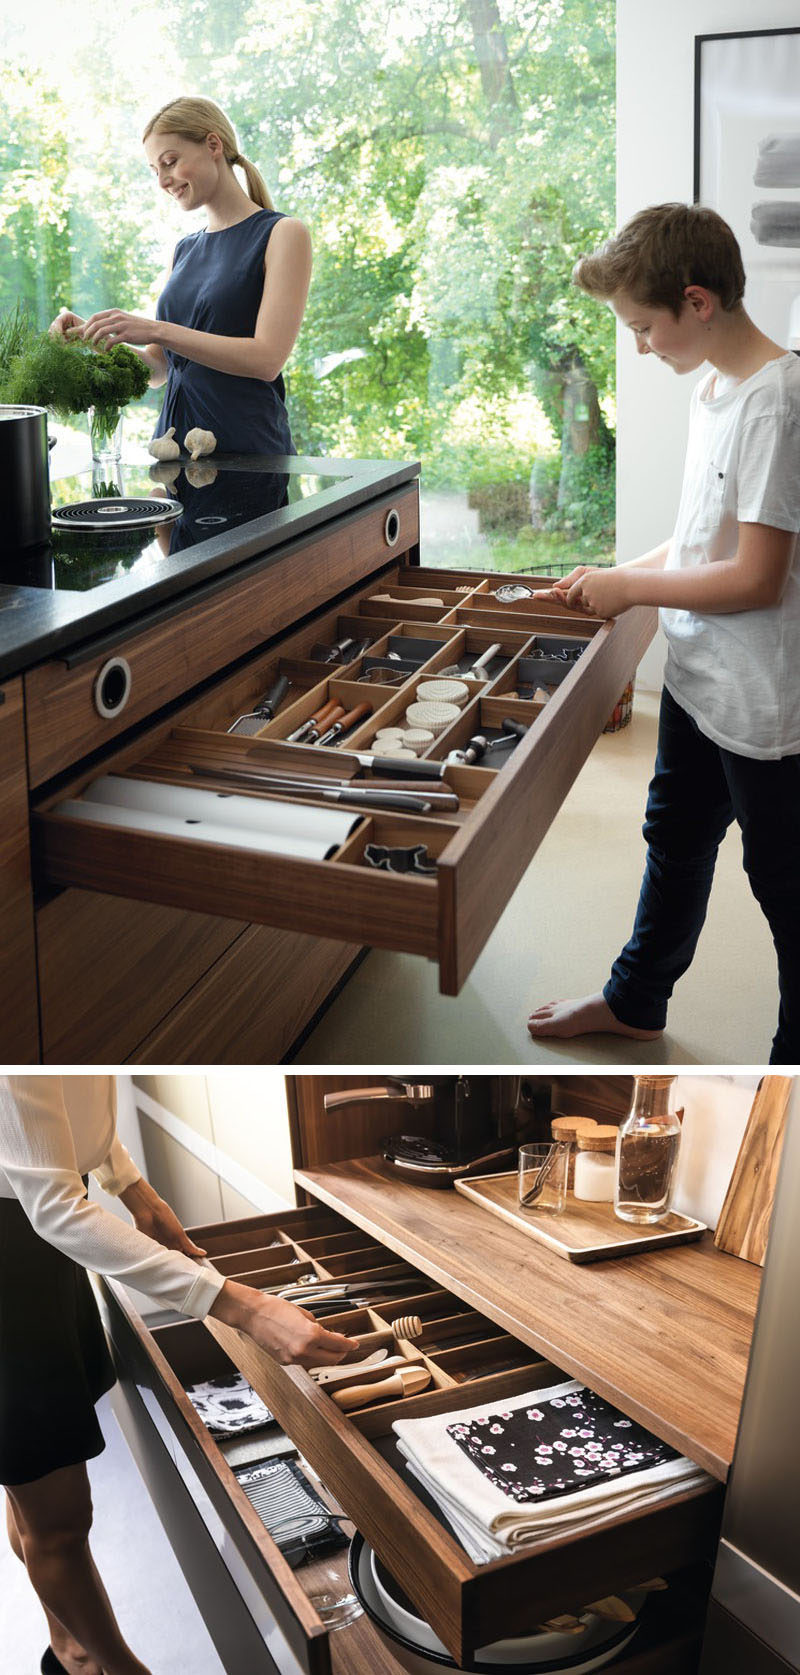 Kitchen Drawer Organization - Design Your Drawers So Everything Has A Place // Well organized drawers like these ones make it easy to find where things go and put them away properly.